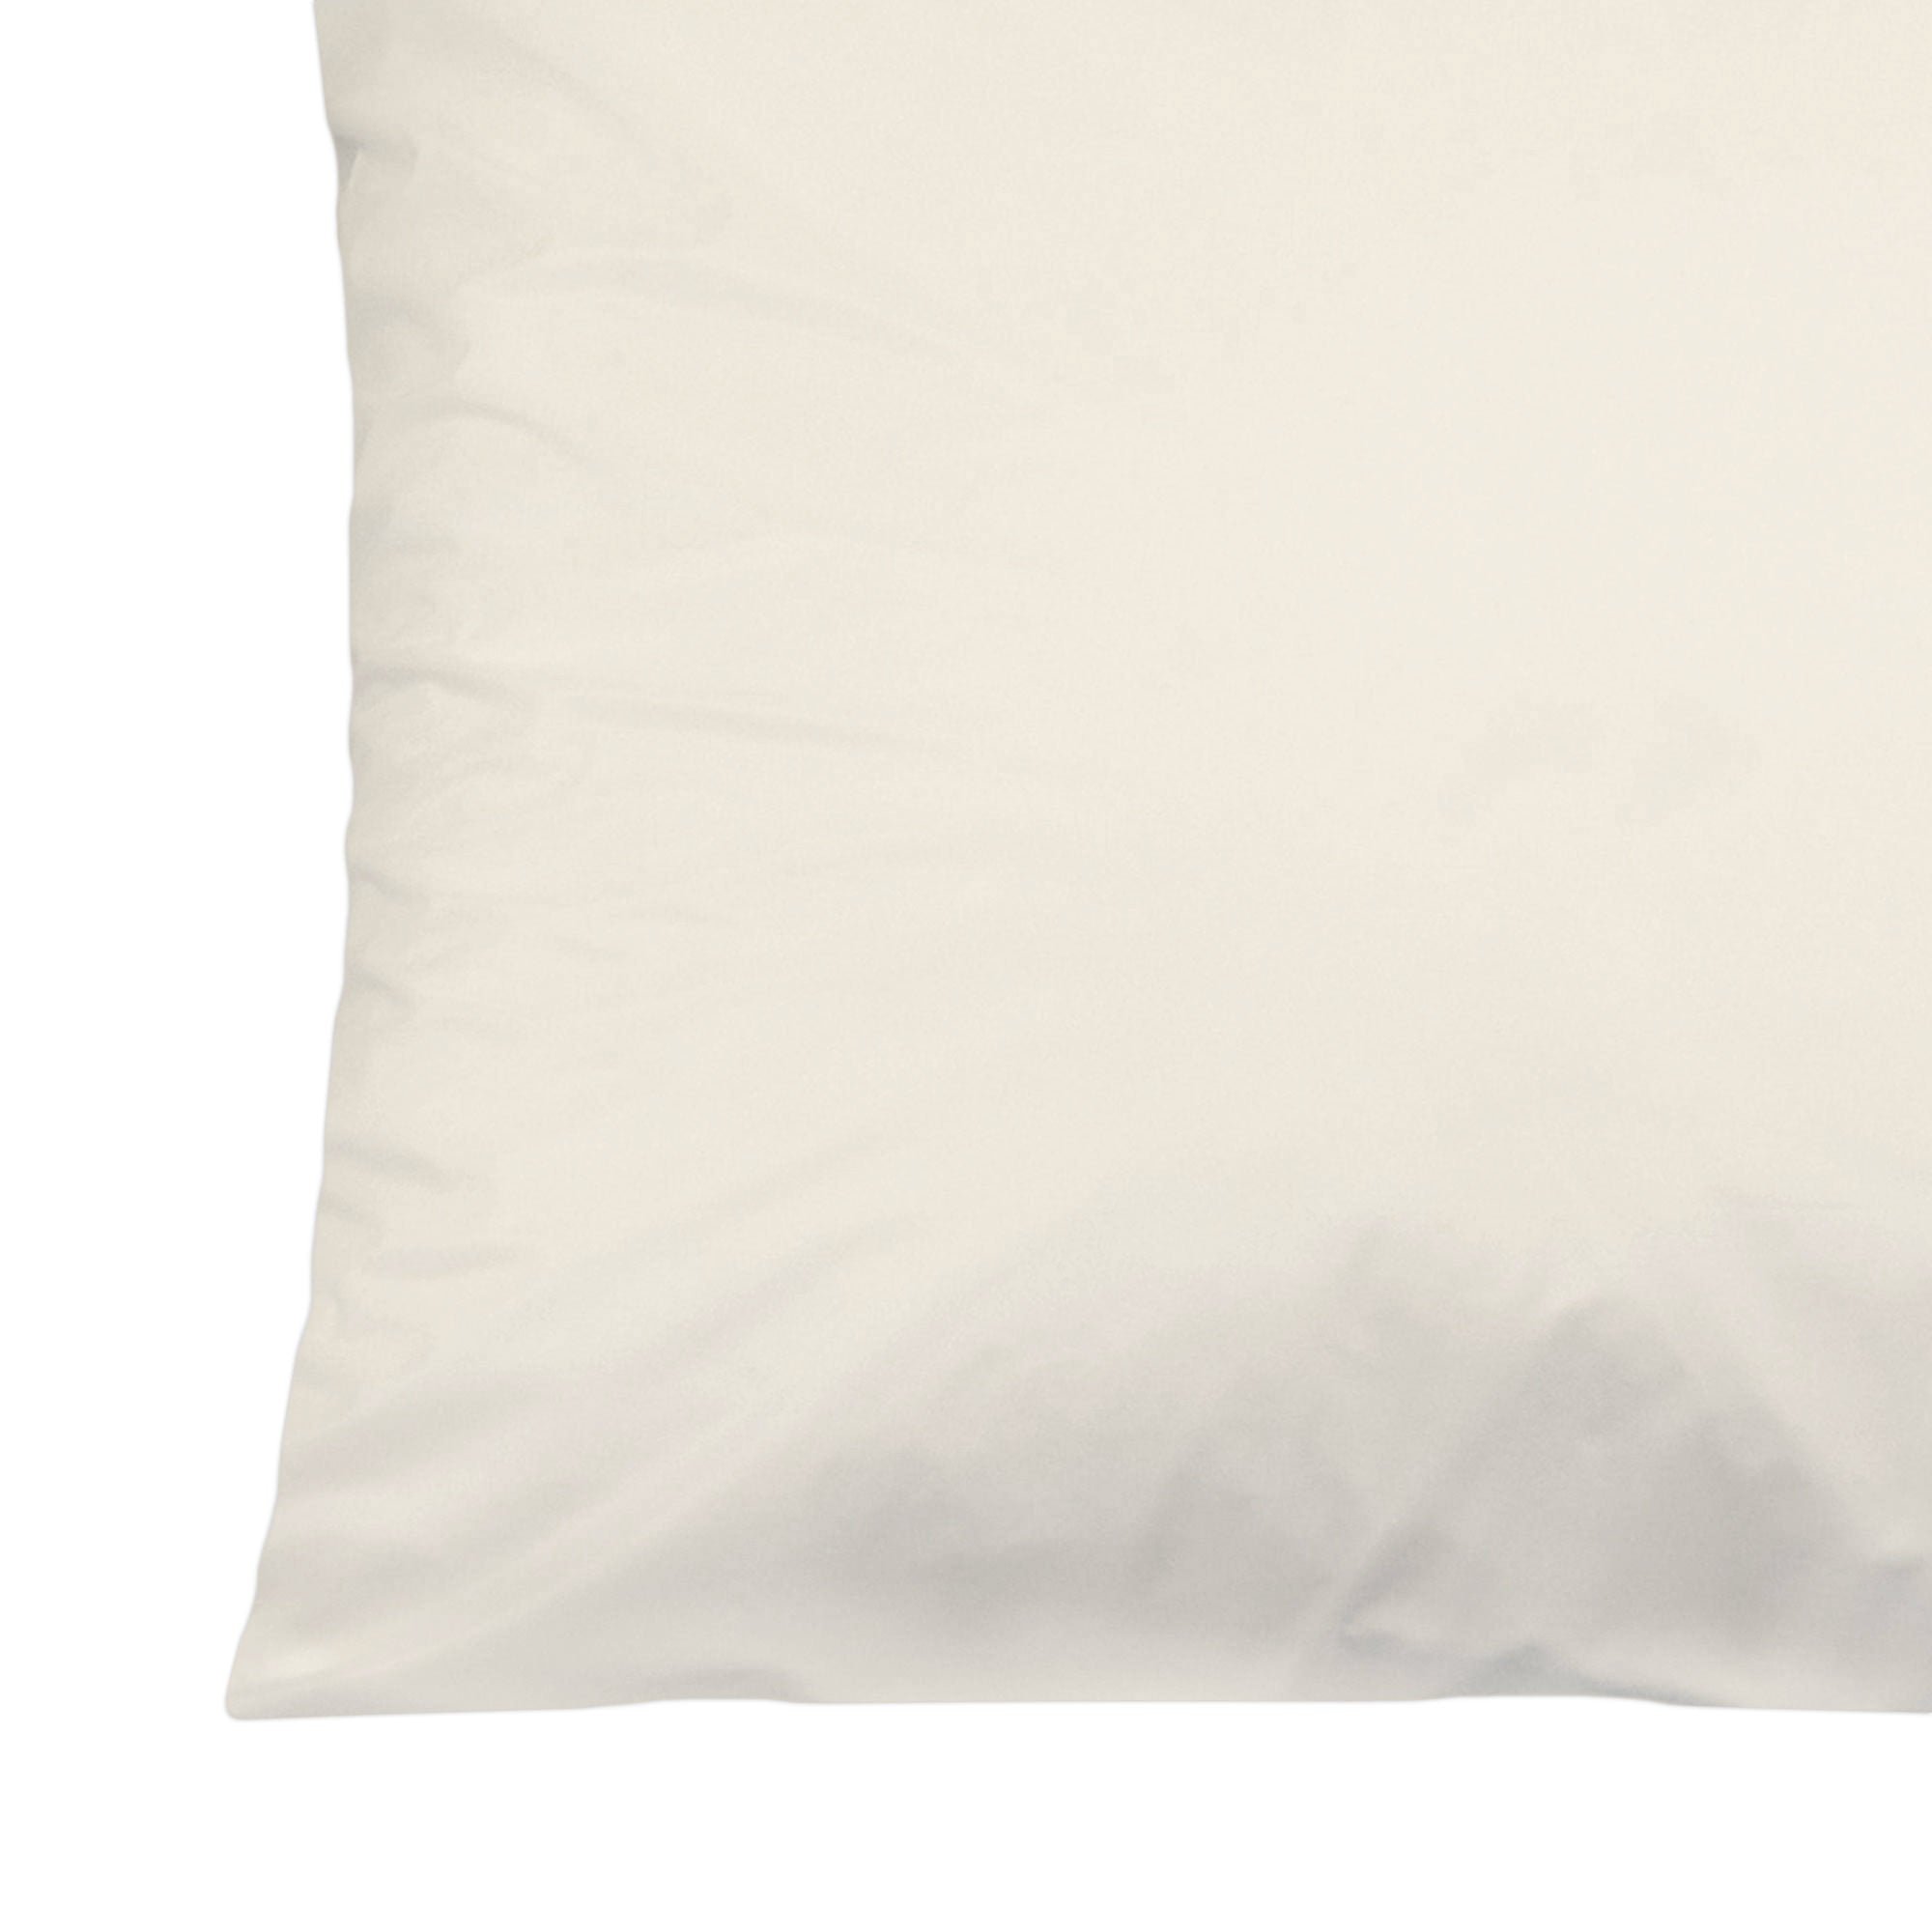 Organic Breathable Waterproof Pillow Protector-Standard